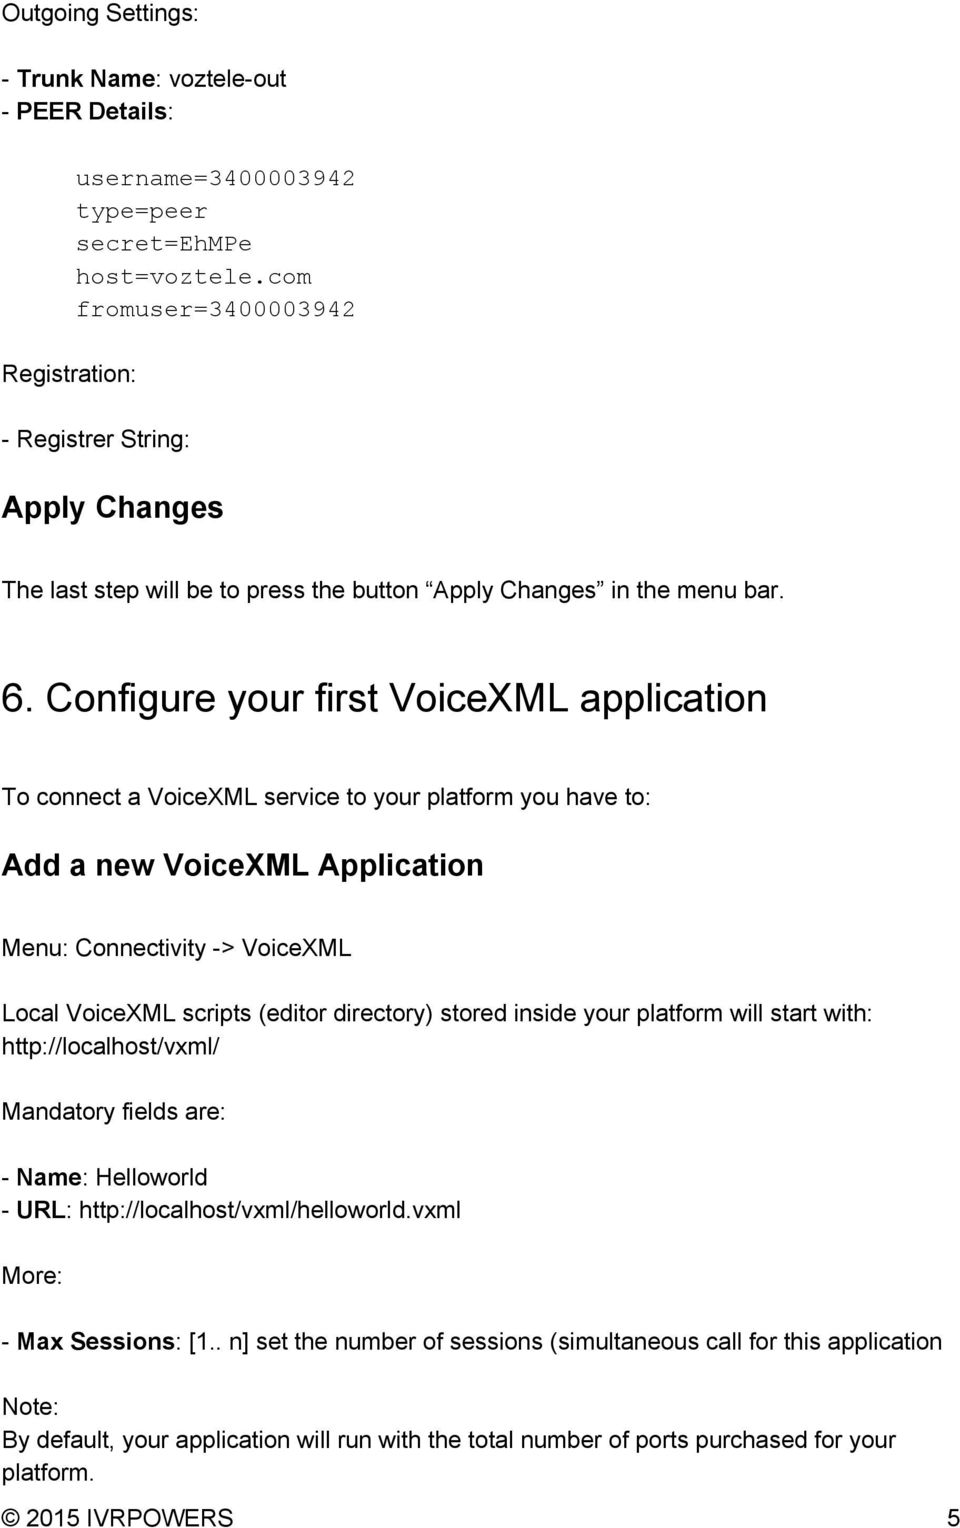 Configure your first VoiceXML application To connect a VoiceXML service to your platform you have to: Add a new VoiceXML Application Menu: Connectivity > VoiceXML Local VoiceXML scripts (editor